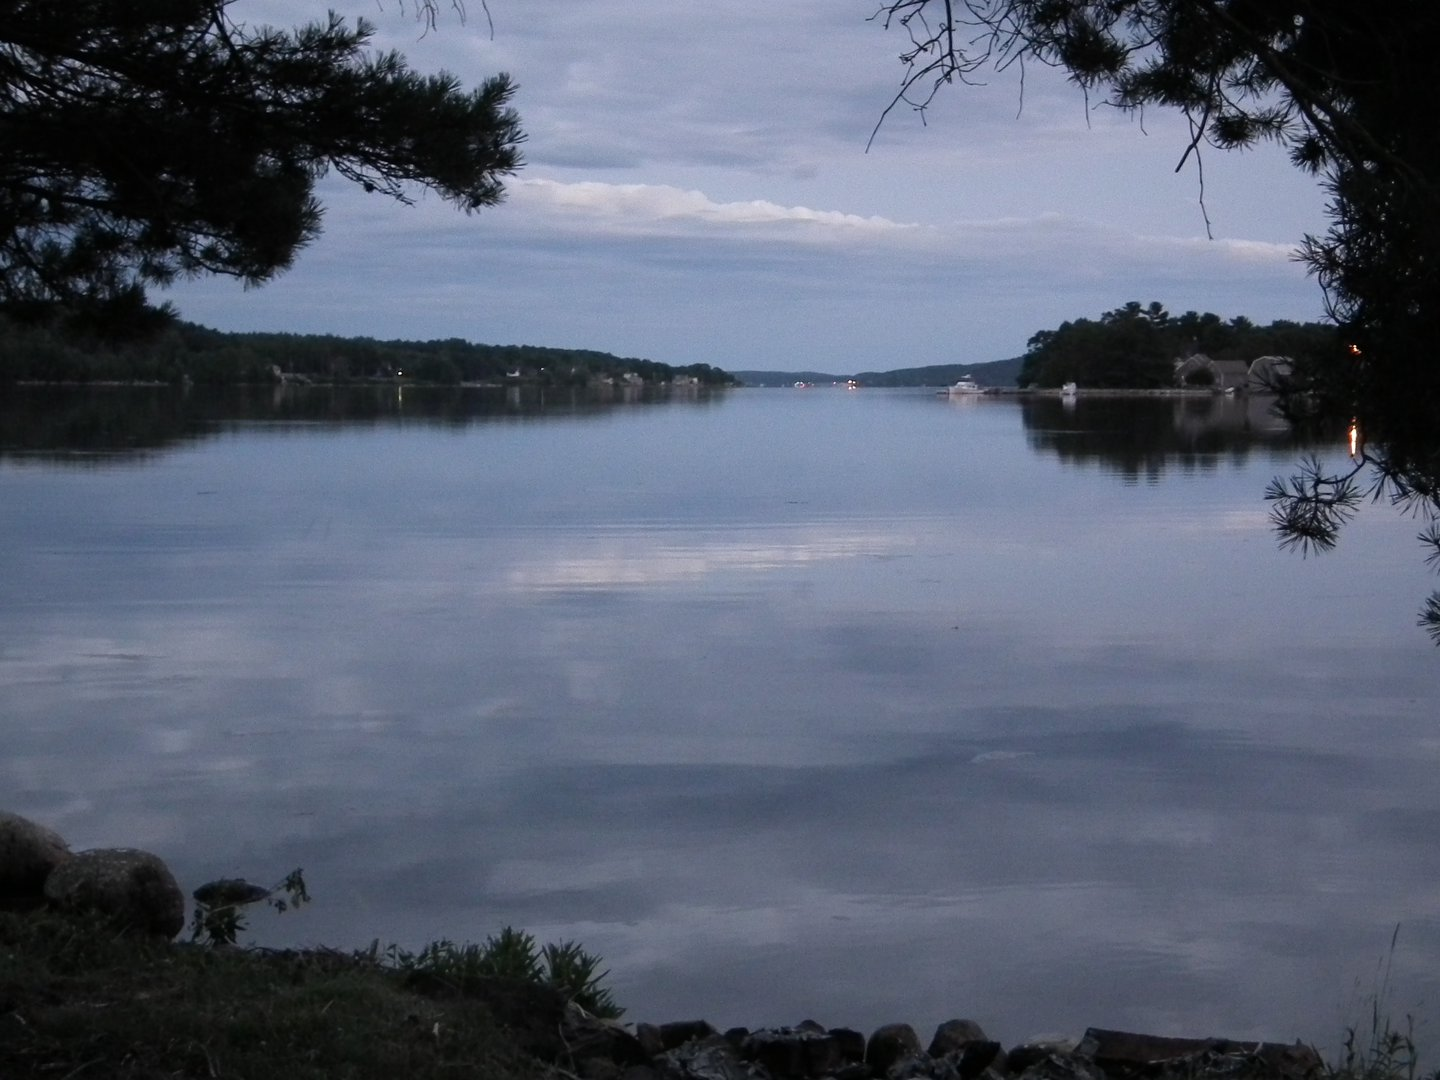 House for rent at 1751 NS-331, Pleasantville, NS. This is the water view with water view.